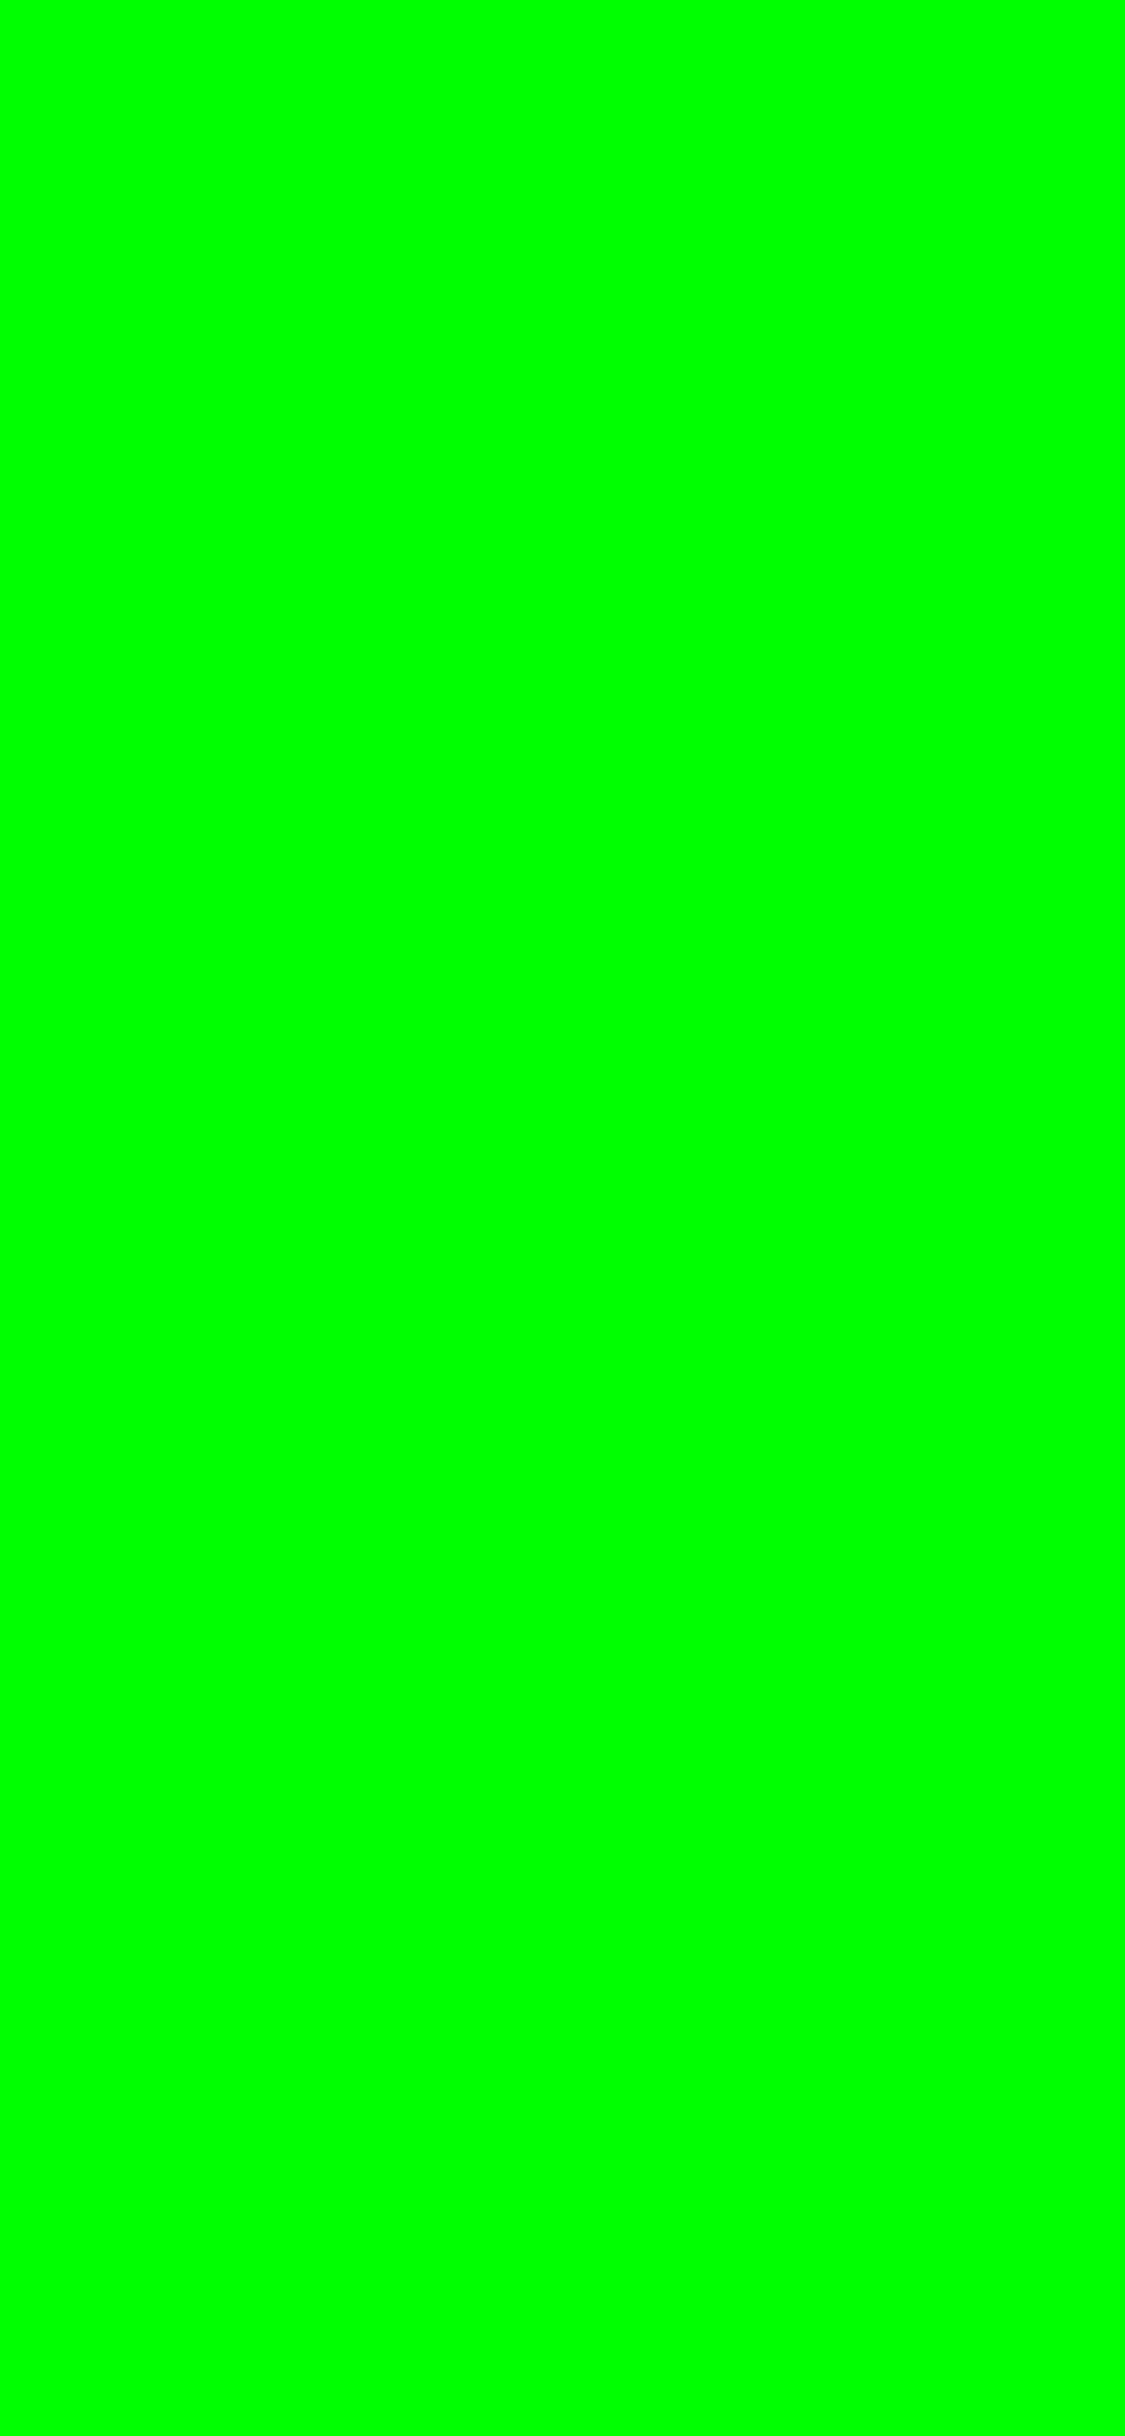 1125x2436 Lime Web Green Solid Color Background